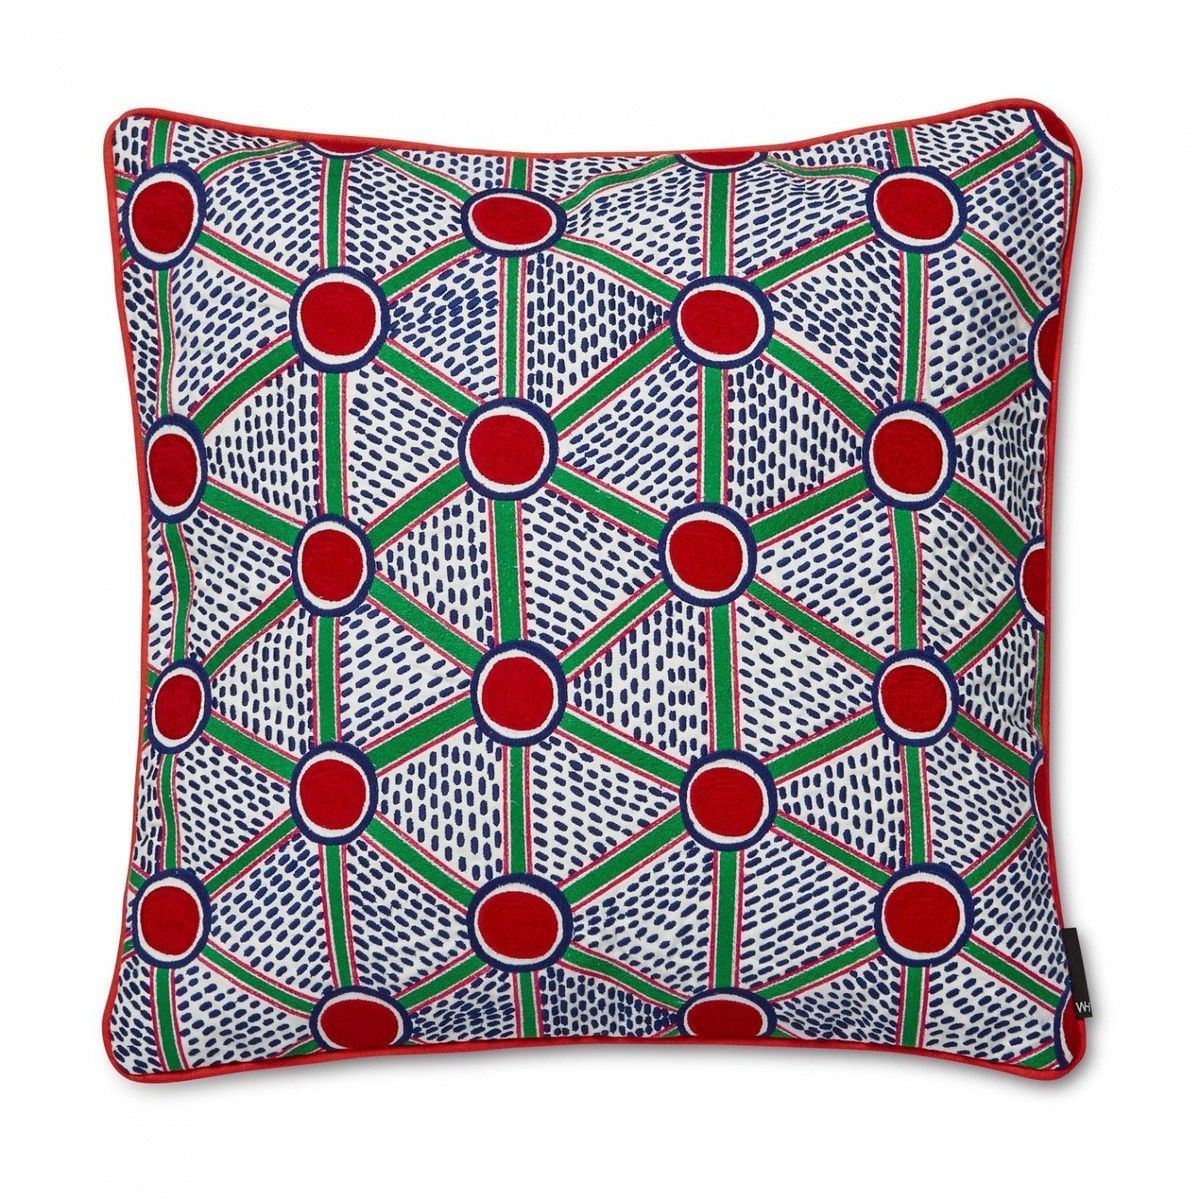 embroidered cushion coussin hay. Black Bedroom Furniture Sets. Home Design Ideas